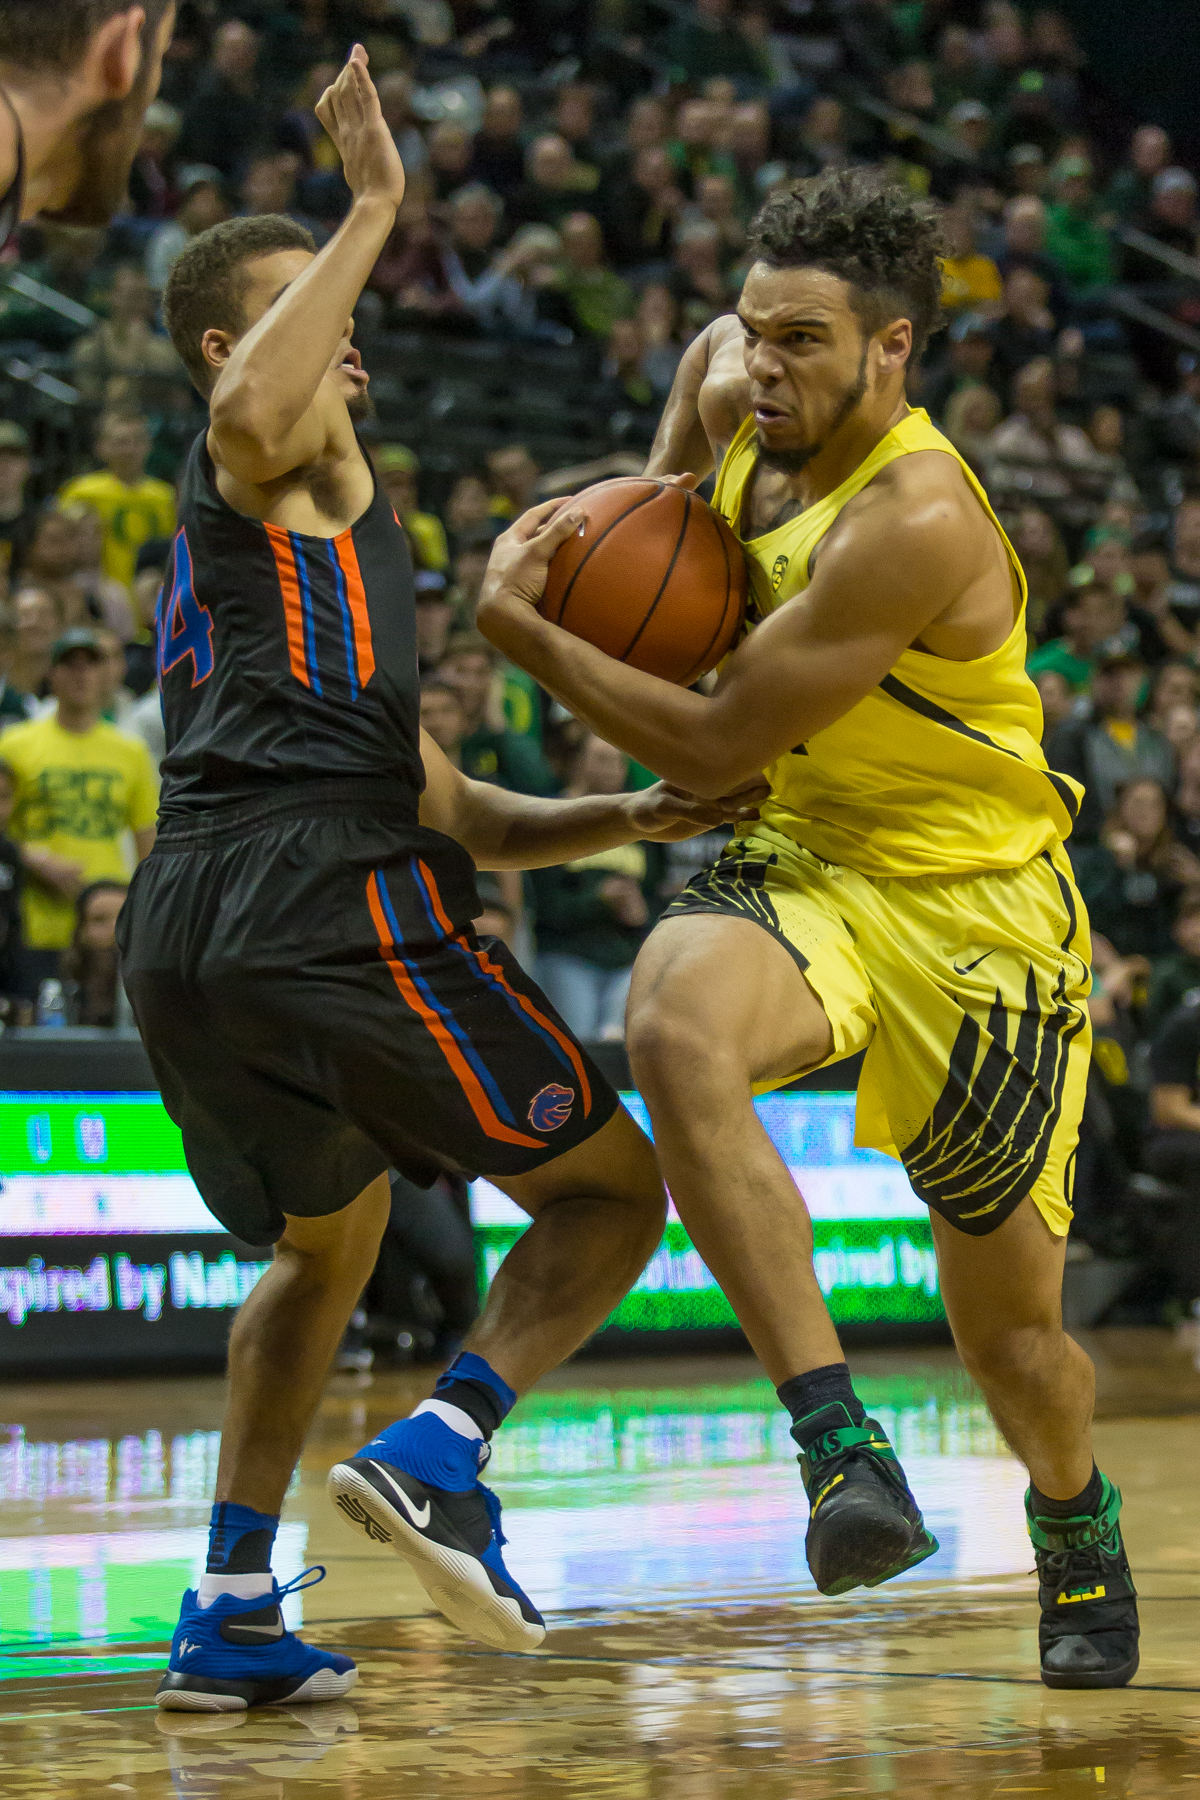 Oregon forward Dillon Brooks (#24) drives past Boise State guard Alex Hobbs (#34). After trailing for most of the game, the Oregon Ducks defeated the Boise State Broncos 68-63. Photo by Dillon Vibes